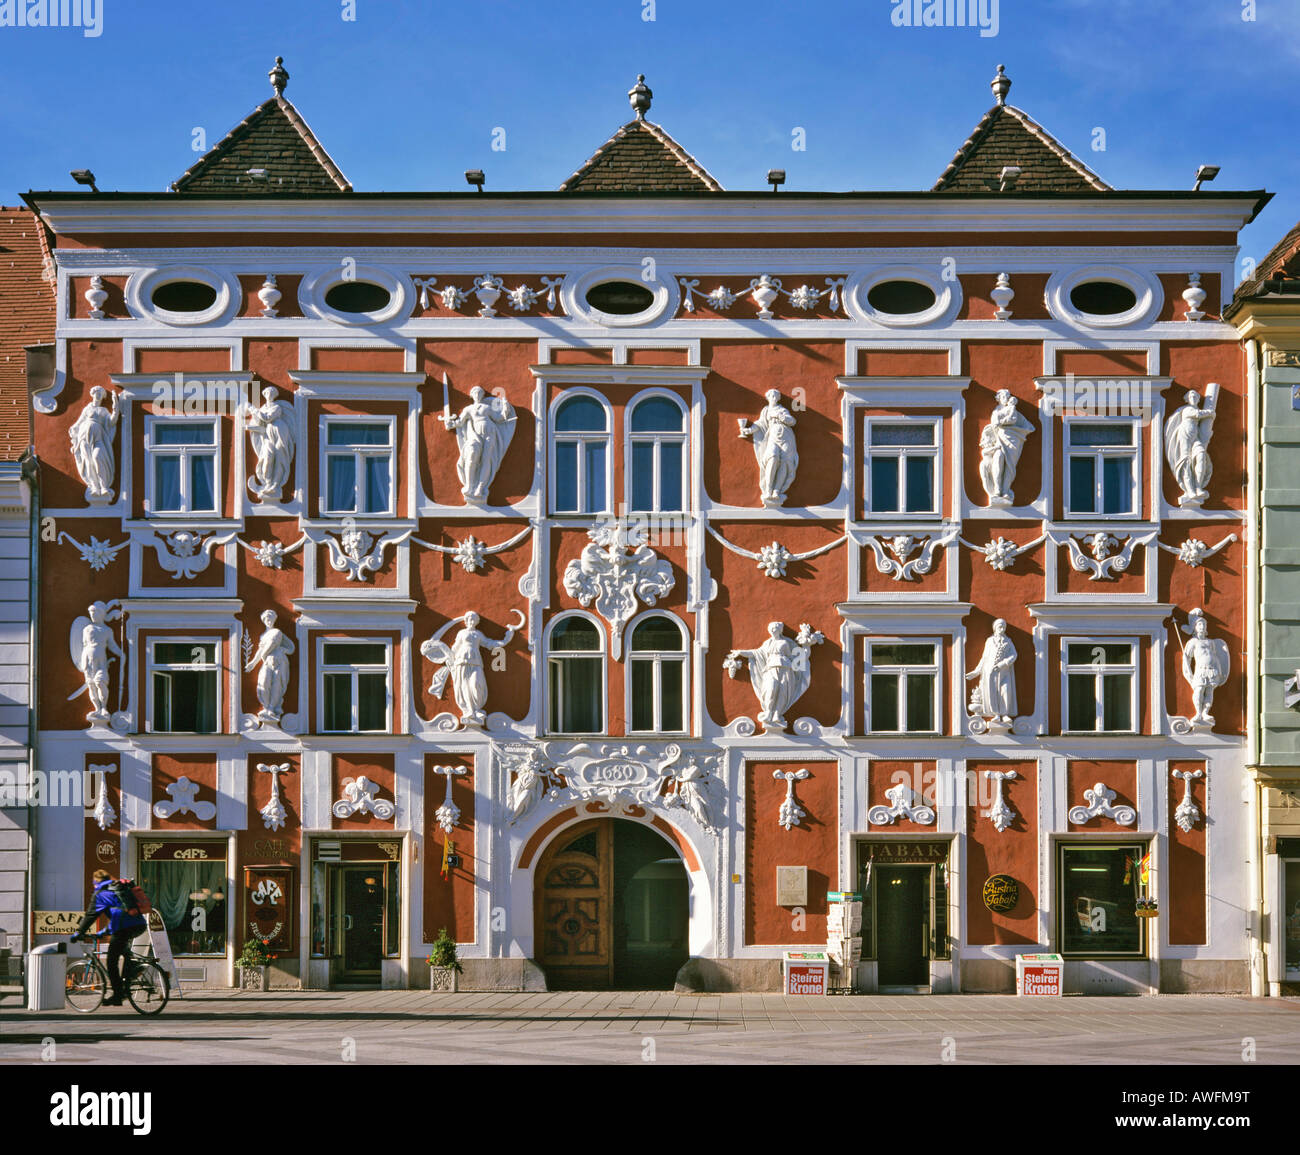 Stucco facade dating to 1680, Hacklhaus building on the main square in Leoben, Styria, Austria, Europe - Stock Image